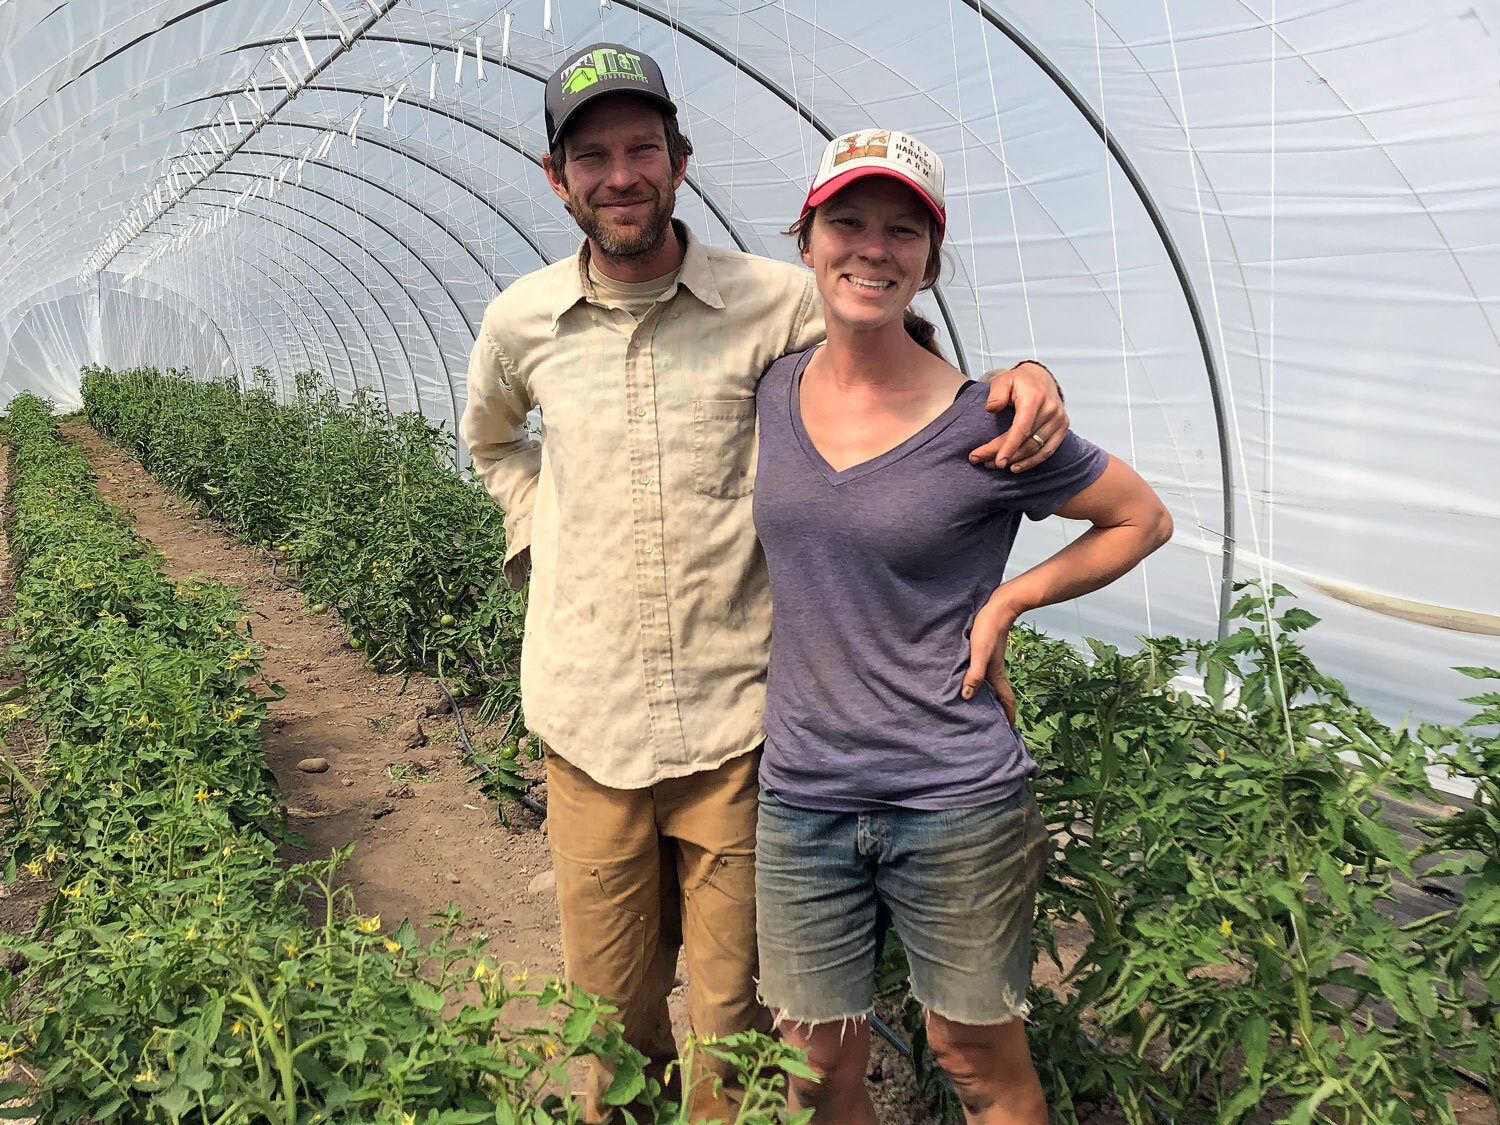 Annie Jesperson and Nathaniel Talbot, owners of Deep Harvest Farm on Whidbey Island